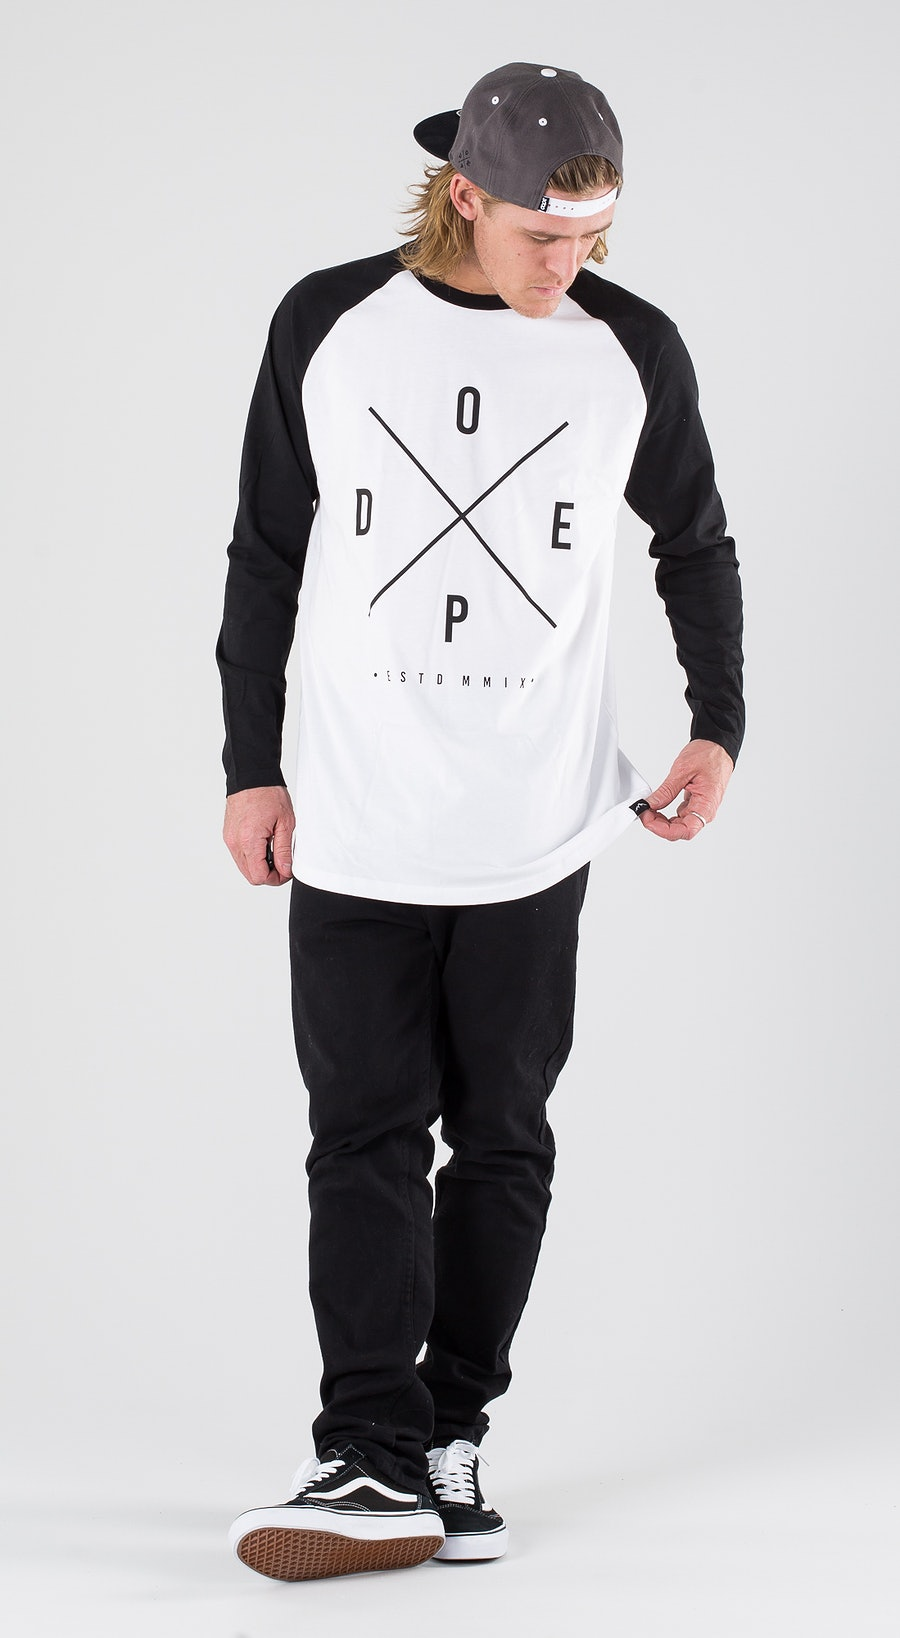 Dope 2X-Up White/Black Outfit Multi